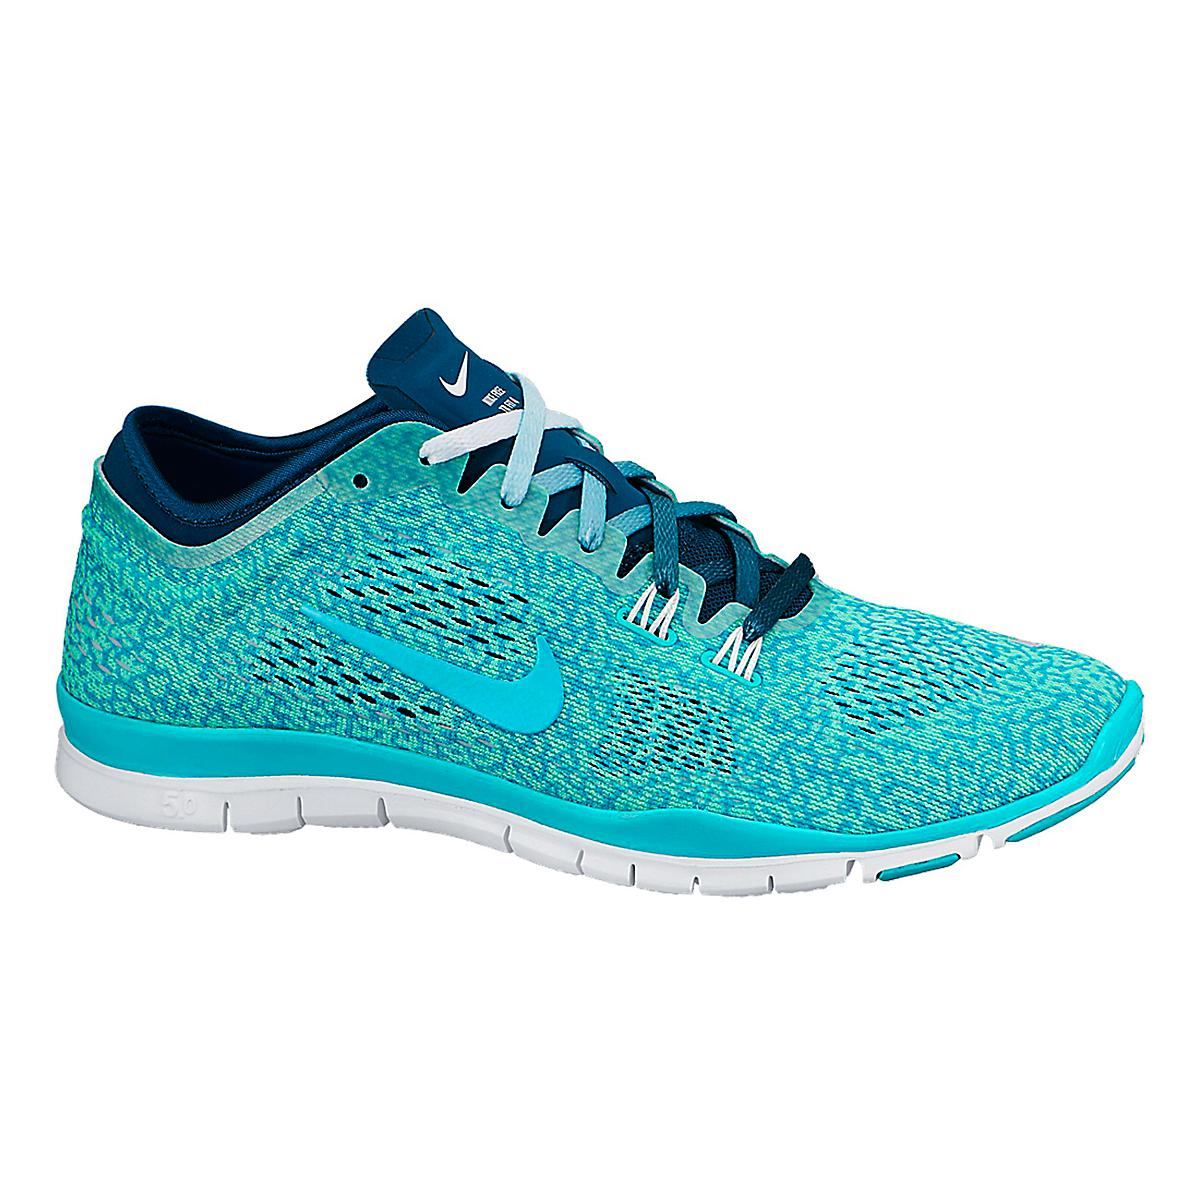 meet 1ac25 74a96 Womens Nike Free 5.0 TR Fit 4 Print Cross Training Shoe at Road Runner  Sports